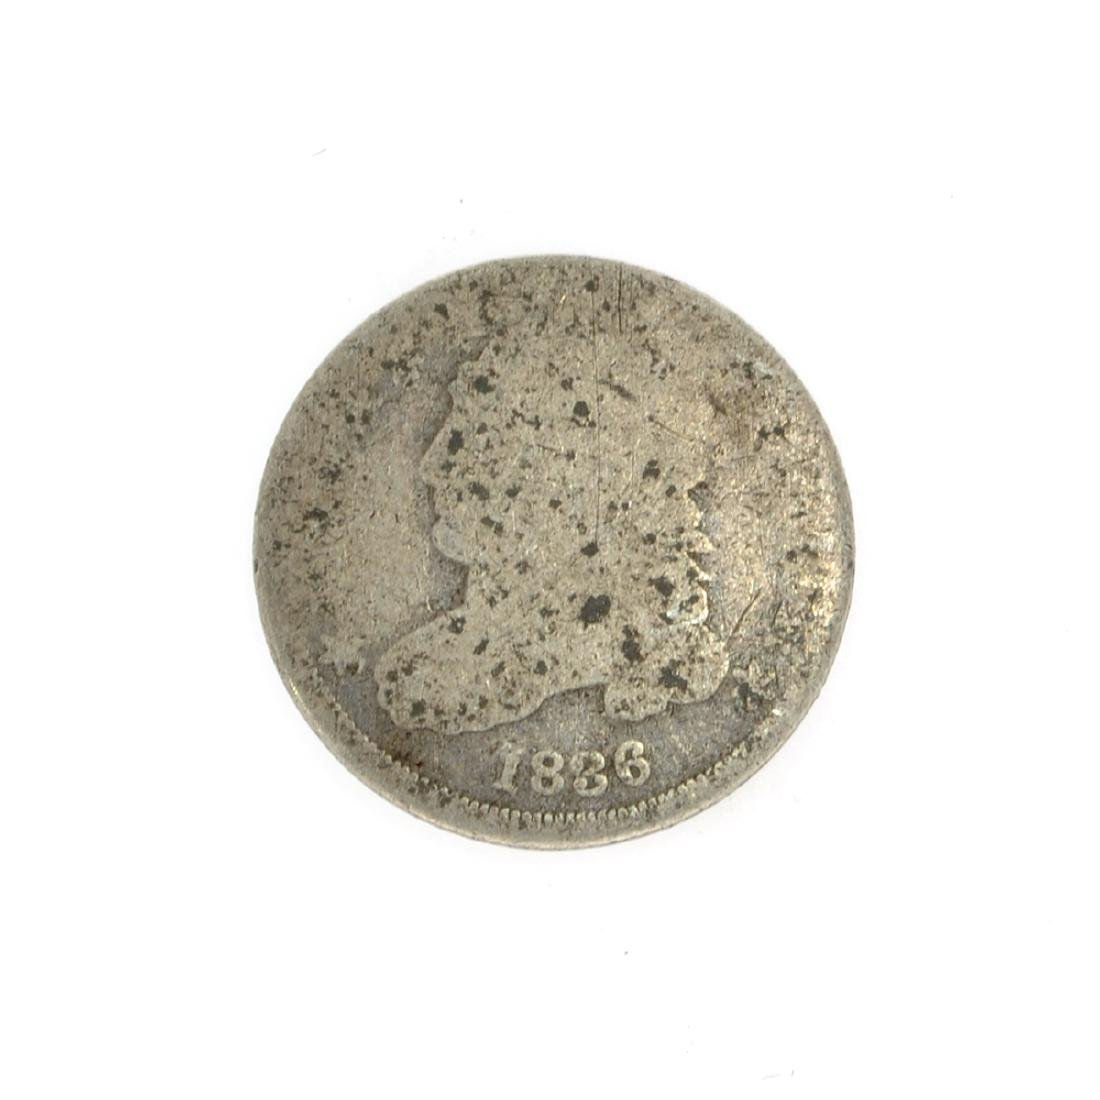 Rare 1836 Capped Bust Dime Coin